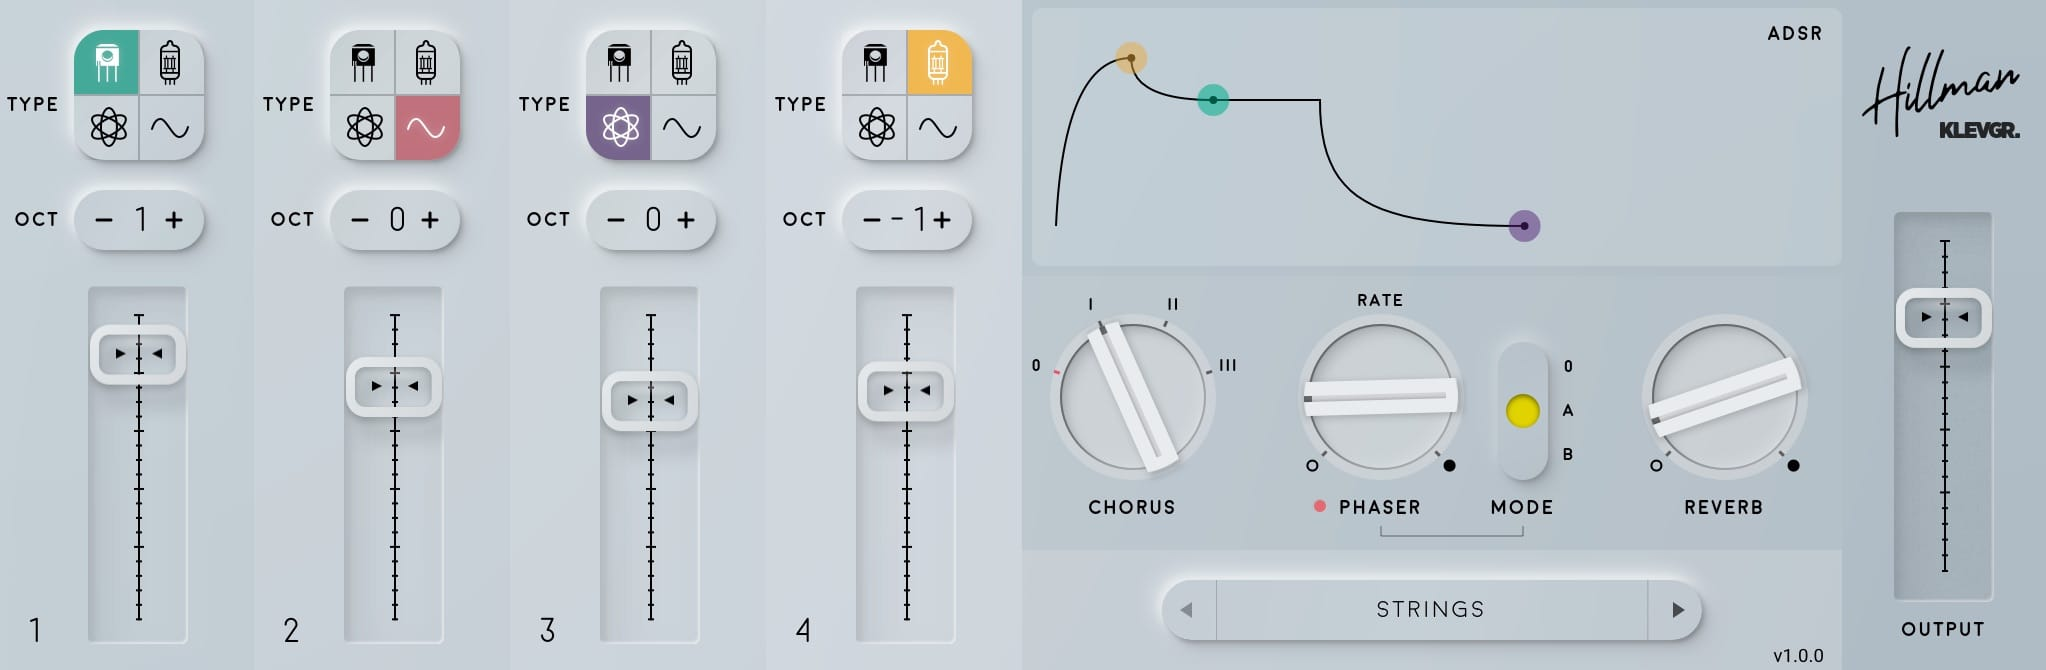 What a beauty! Klevgrand's Hillman vintage synth app is a textbook example of neumorphism